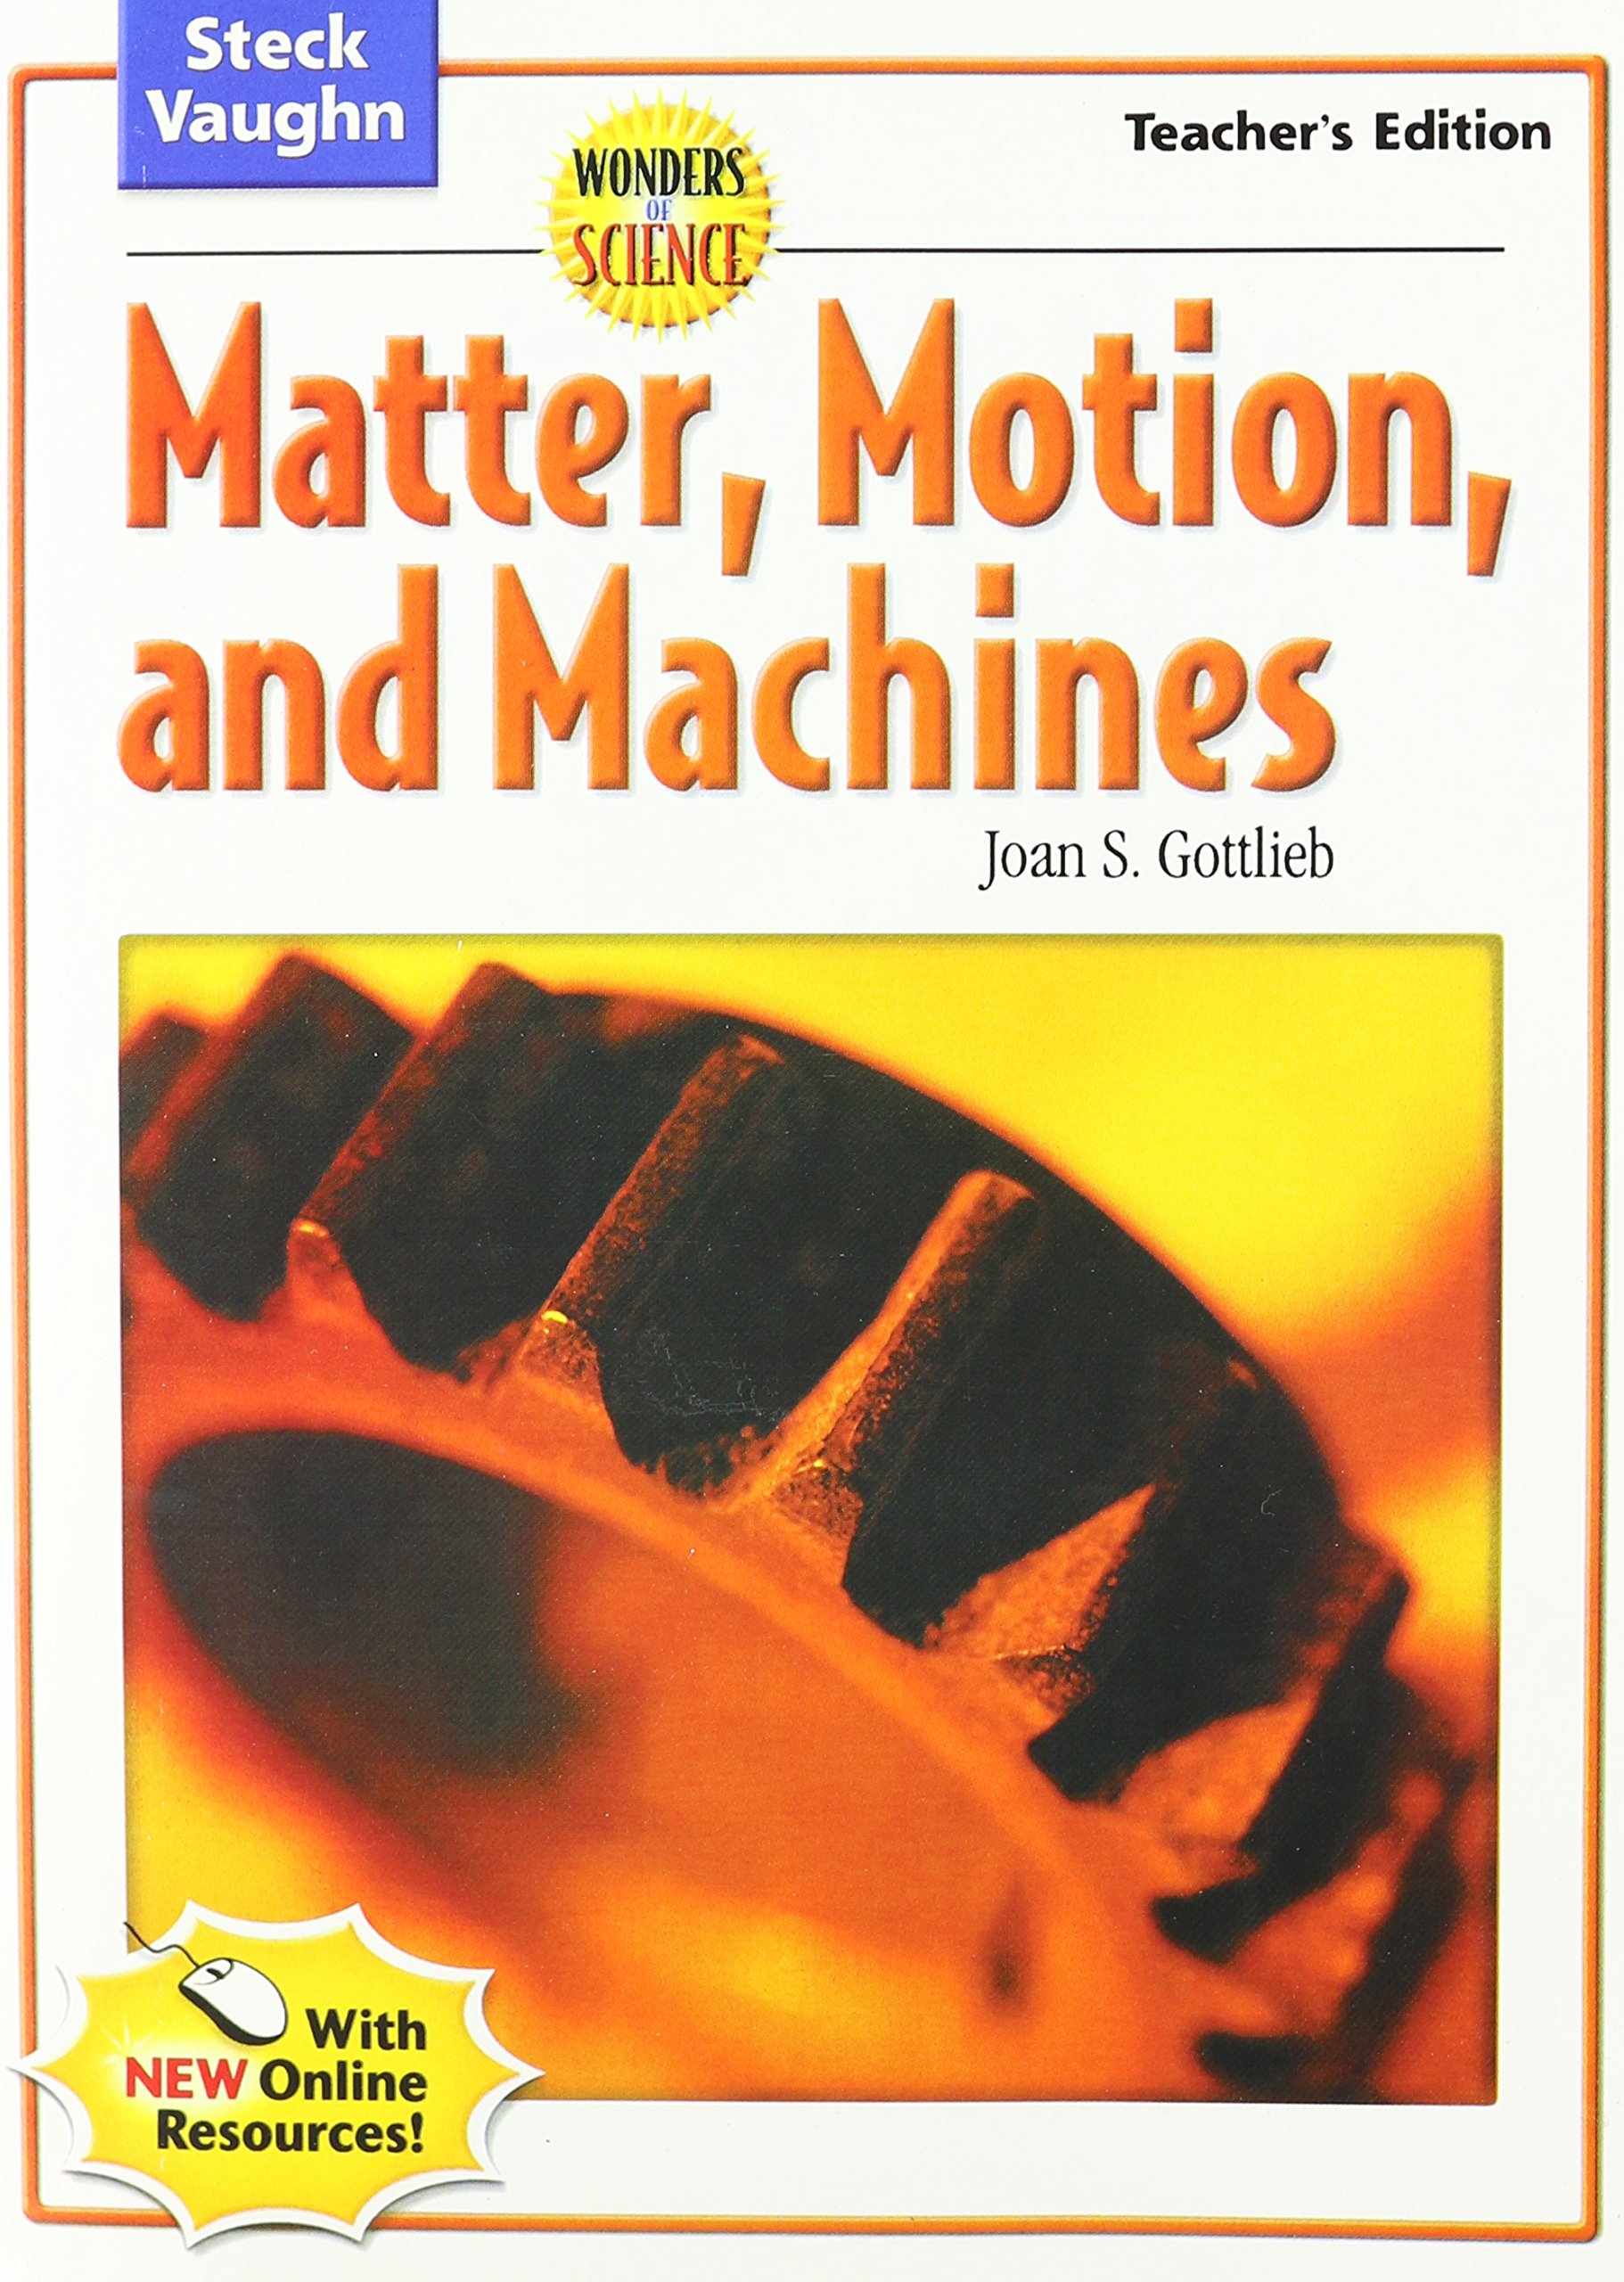 Buy Matter, Motion, and Machines (Steck-vaughn Wonders of Science) Book  Online at Low Prices in India   Matter, Motion, and Machines (Steck-vaughn  Wonders ...